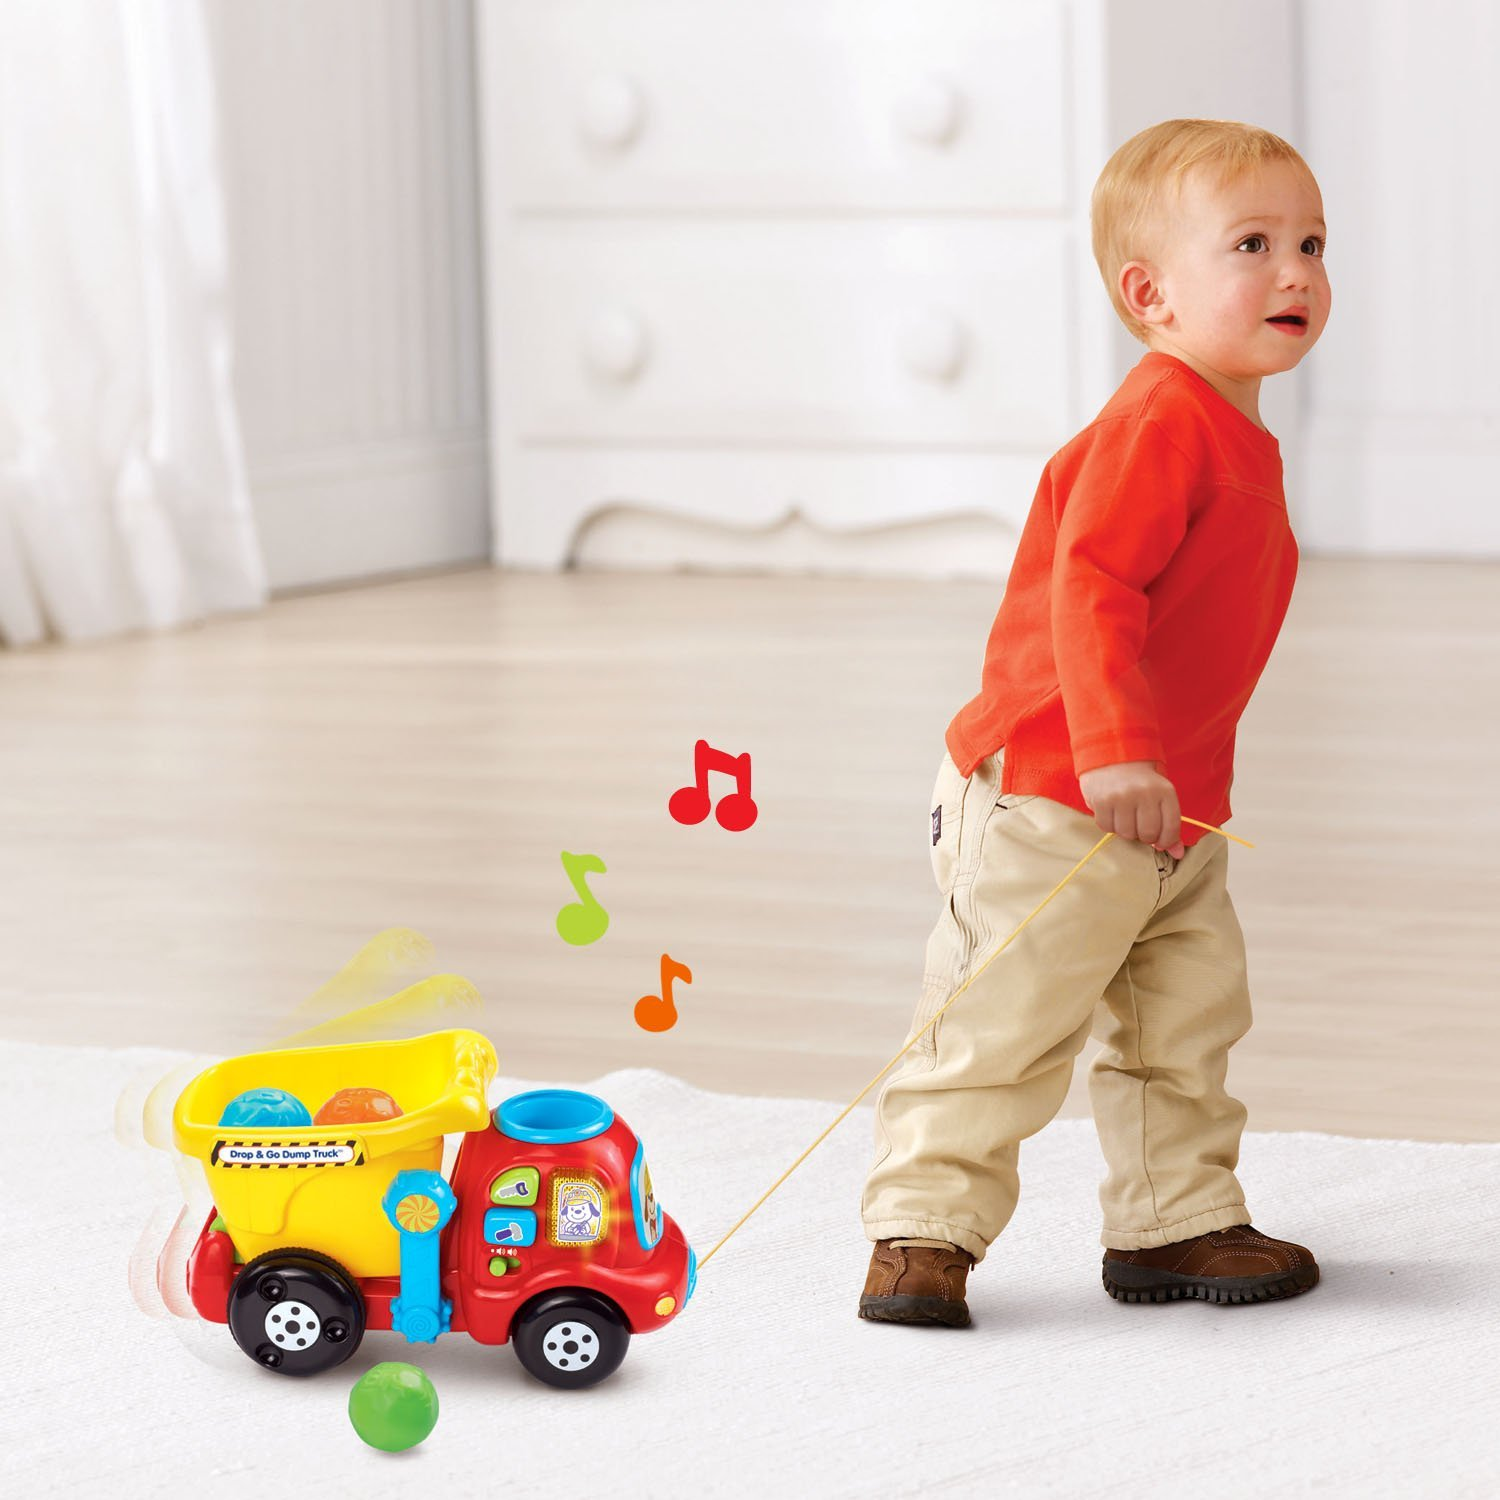 VTech Drop and Go Dump Truck, Fun Toy, 30+ Songs, melodies & phrases, New! by